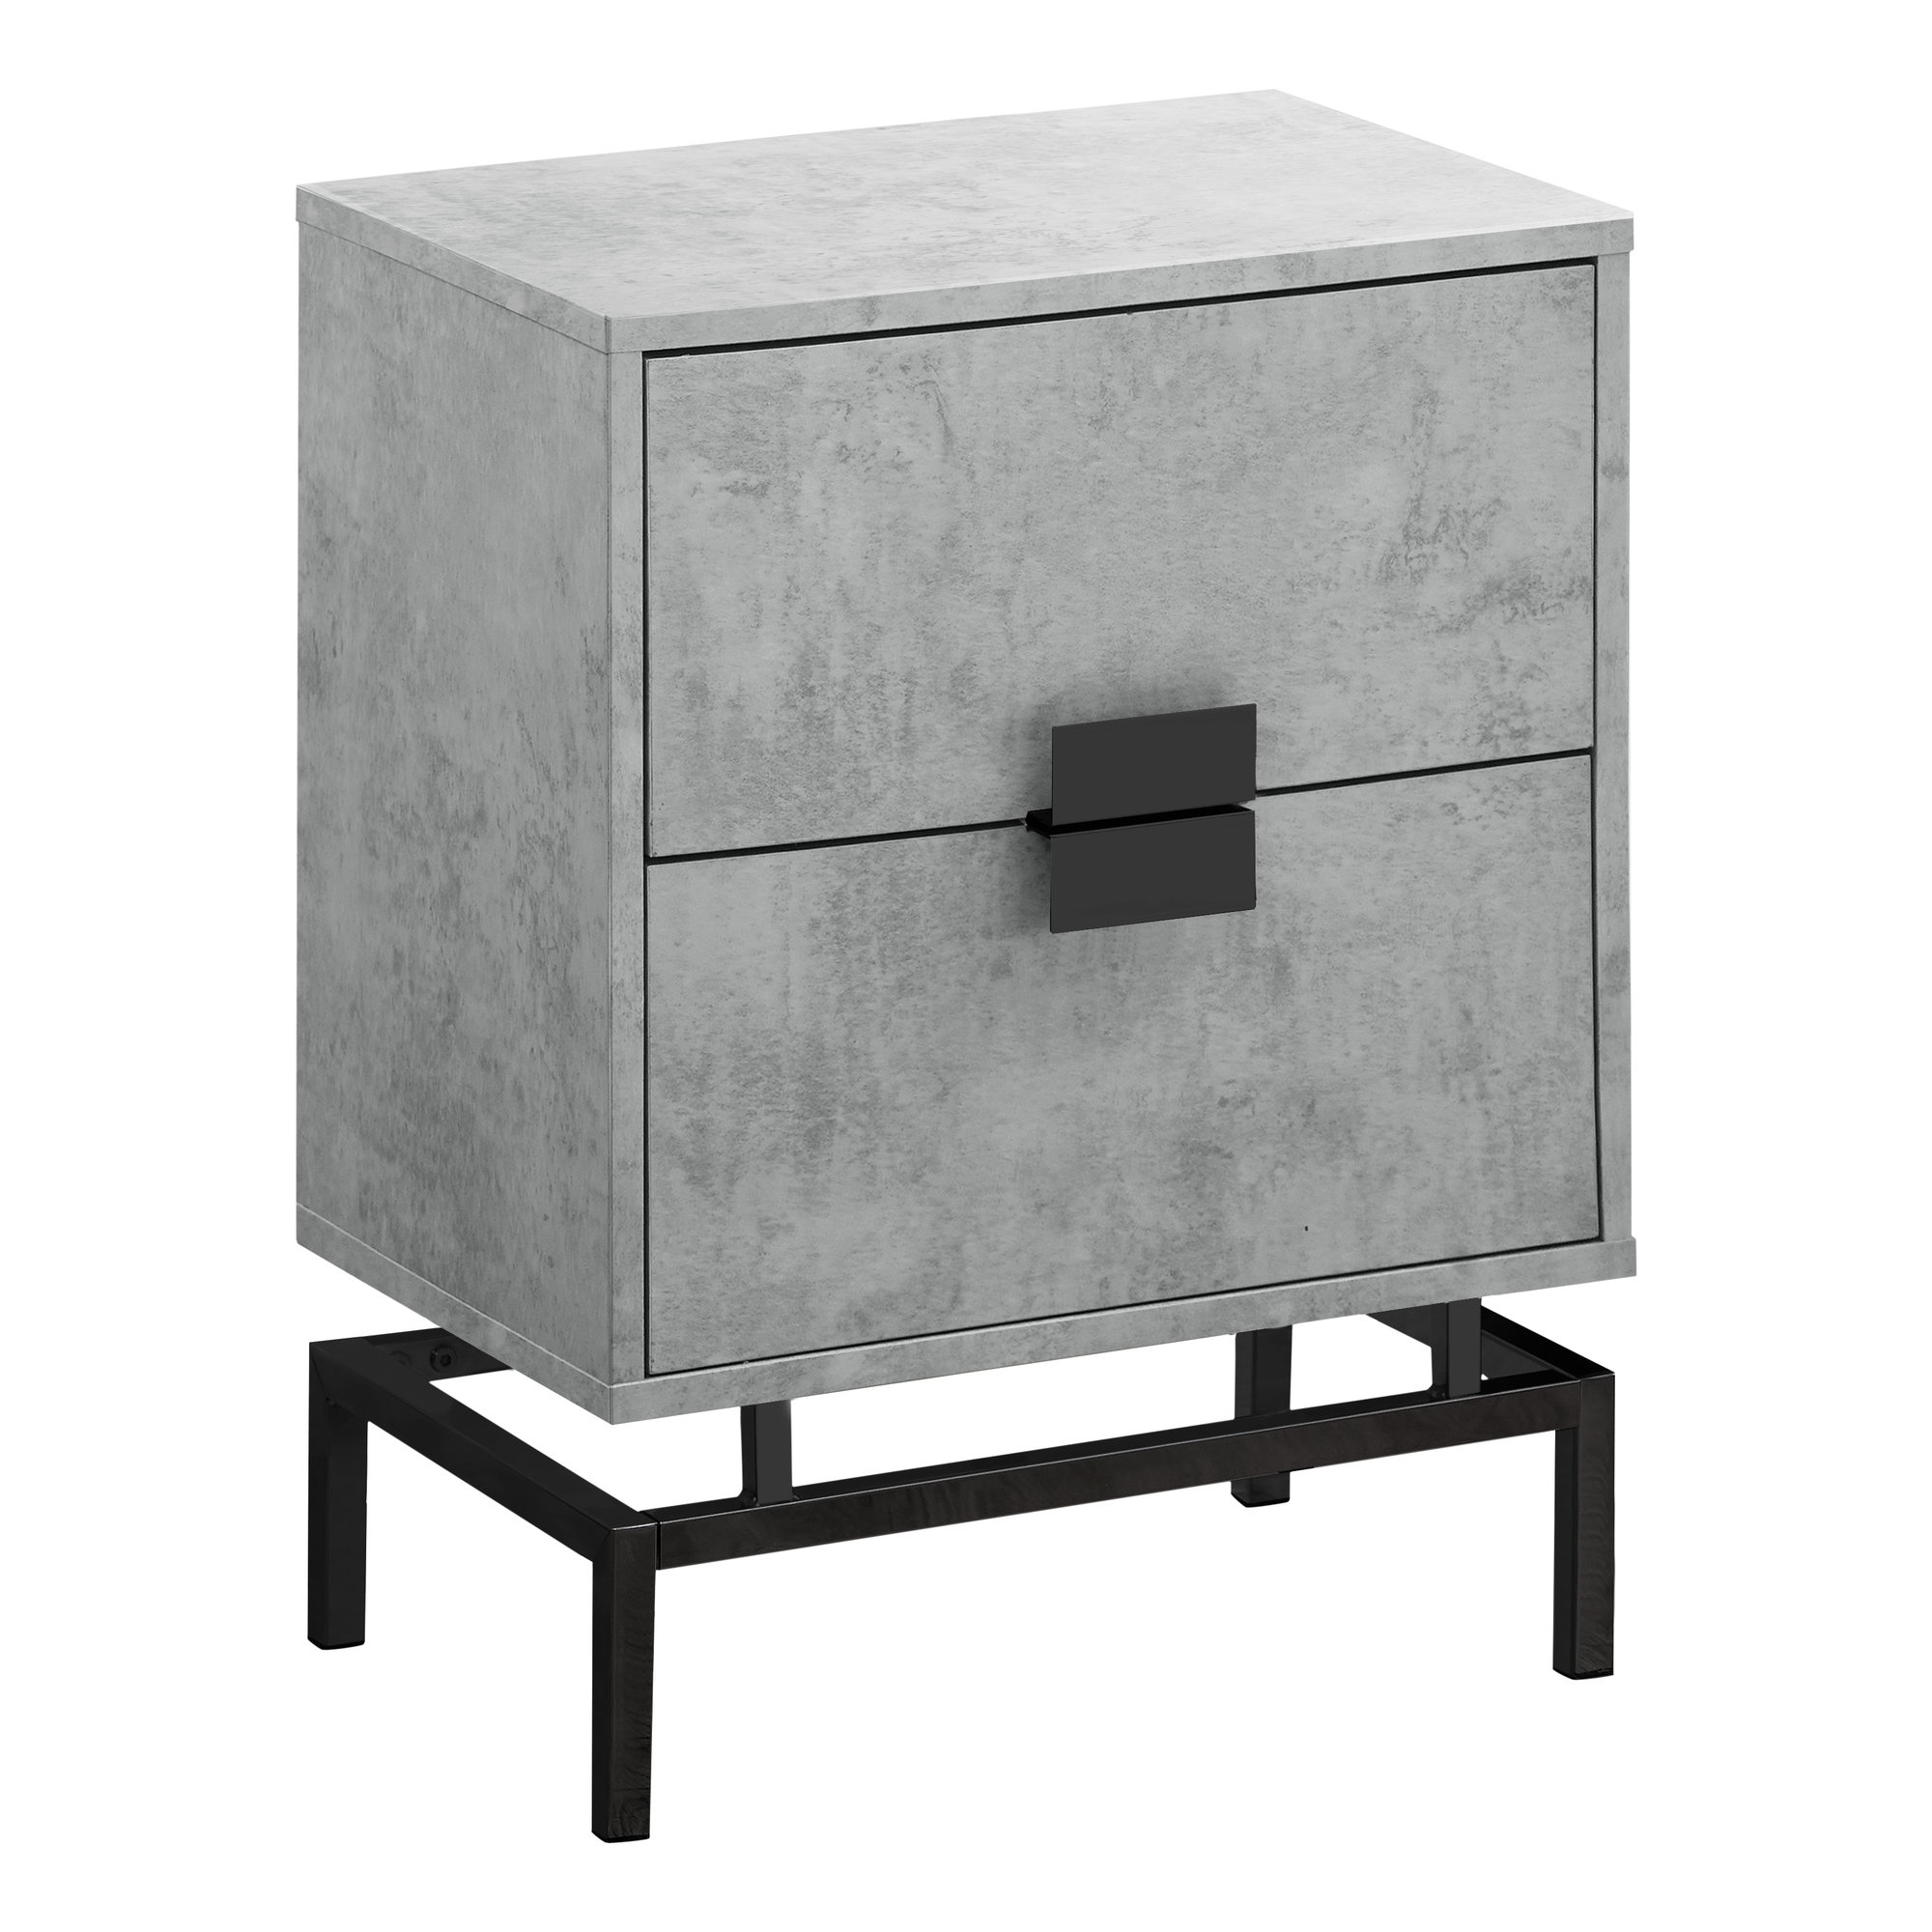 "ACCENT TABLE - 24""H / GREY CEMENT / BLACK NICKEL METAL"